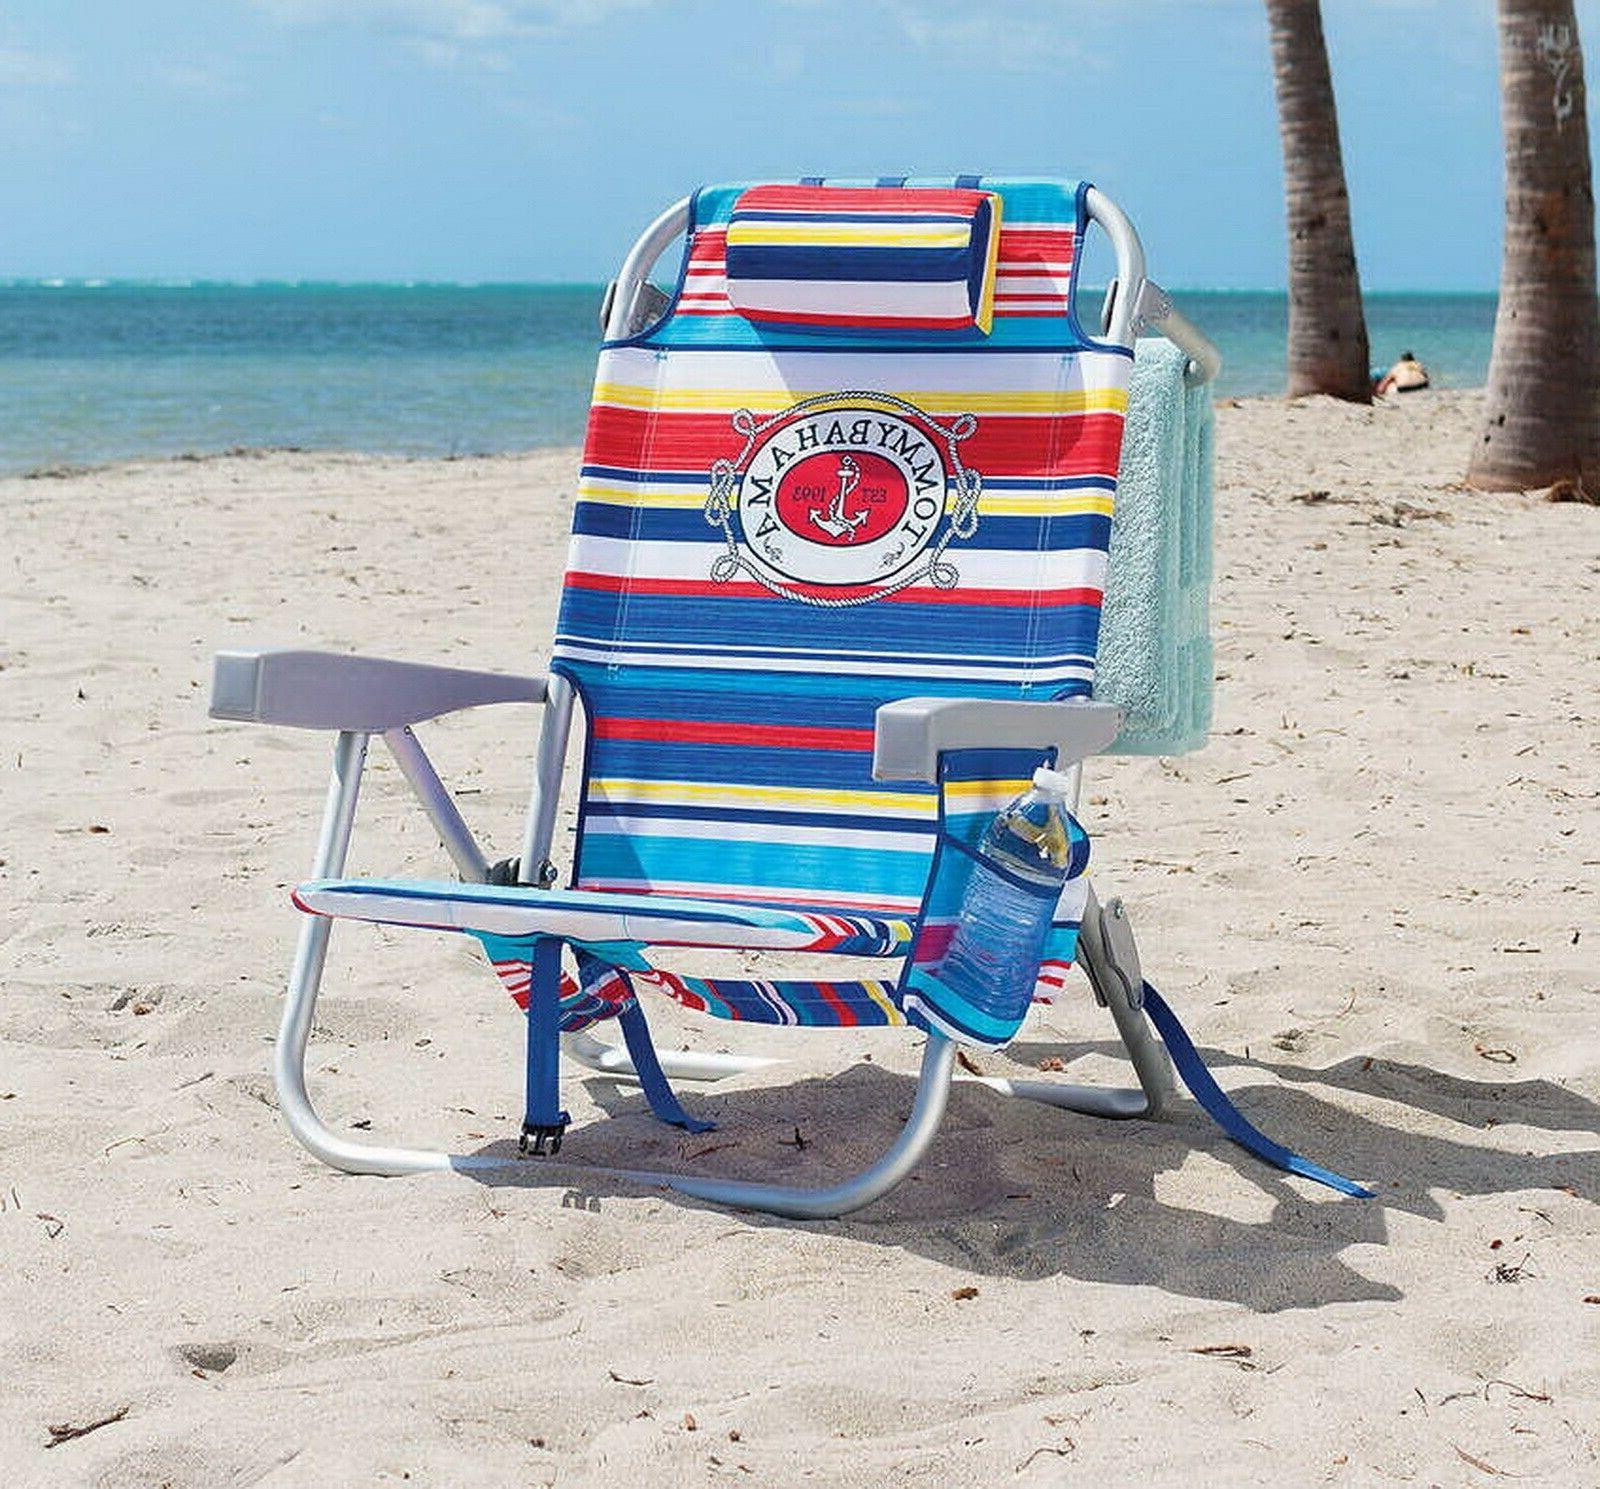 Surprising Tommy Bahama Backpack Beach Chair Portable Seat With Drink Holder Phone Pocket Pabps2019 Chair Design Images Pabps2019Com